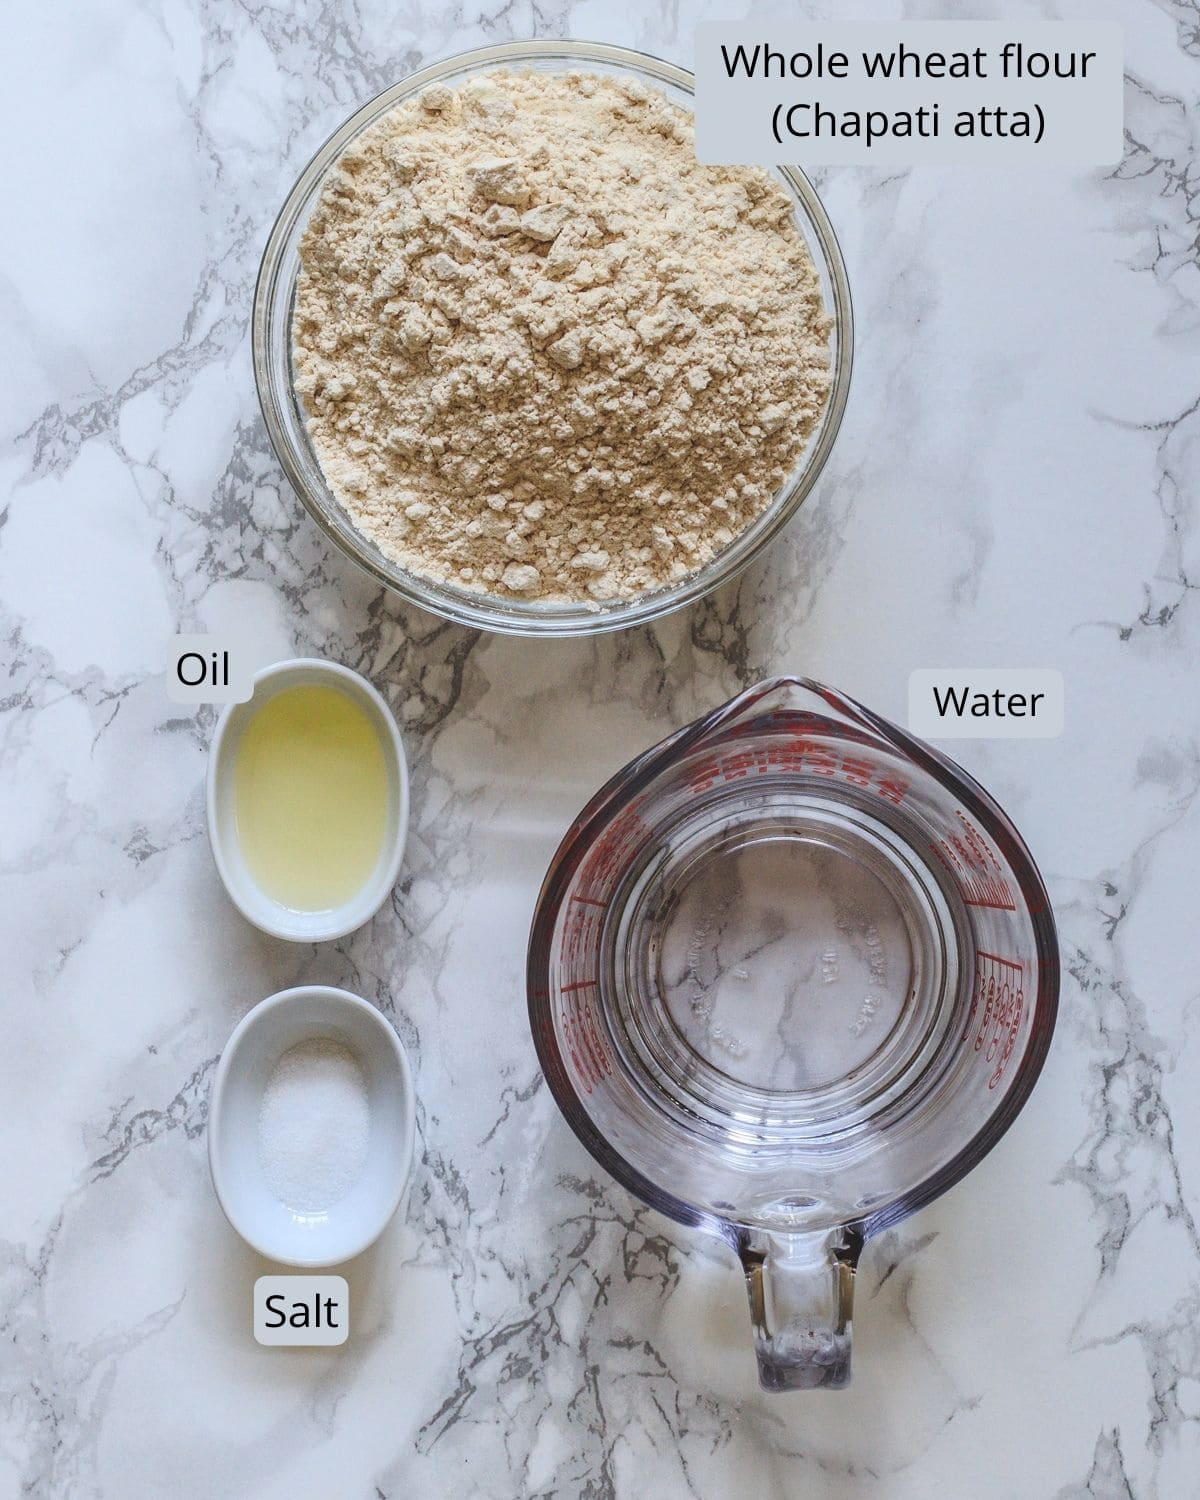 Ingredients used in making poori incudes chapati atta, salt, oil, water.